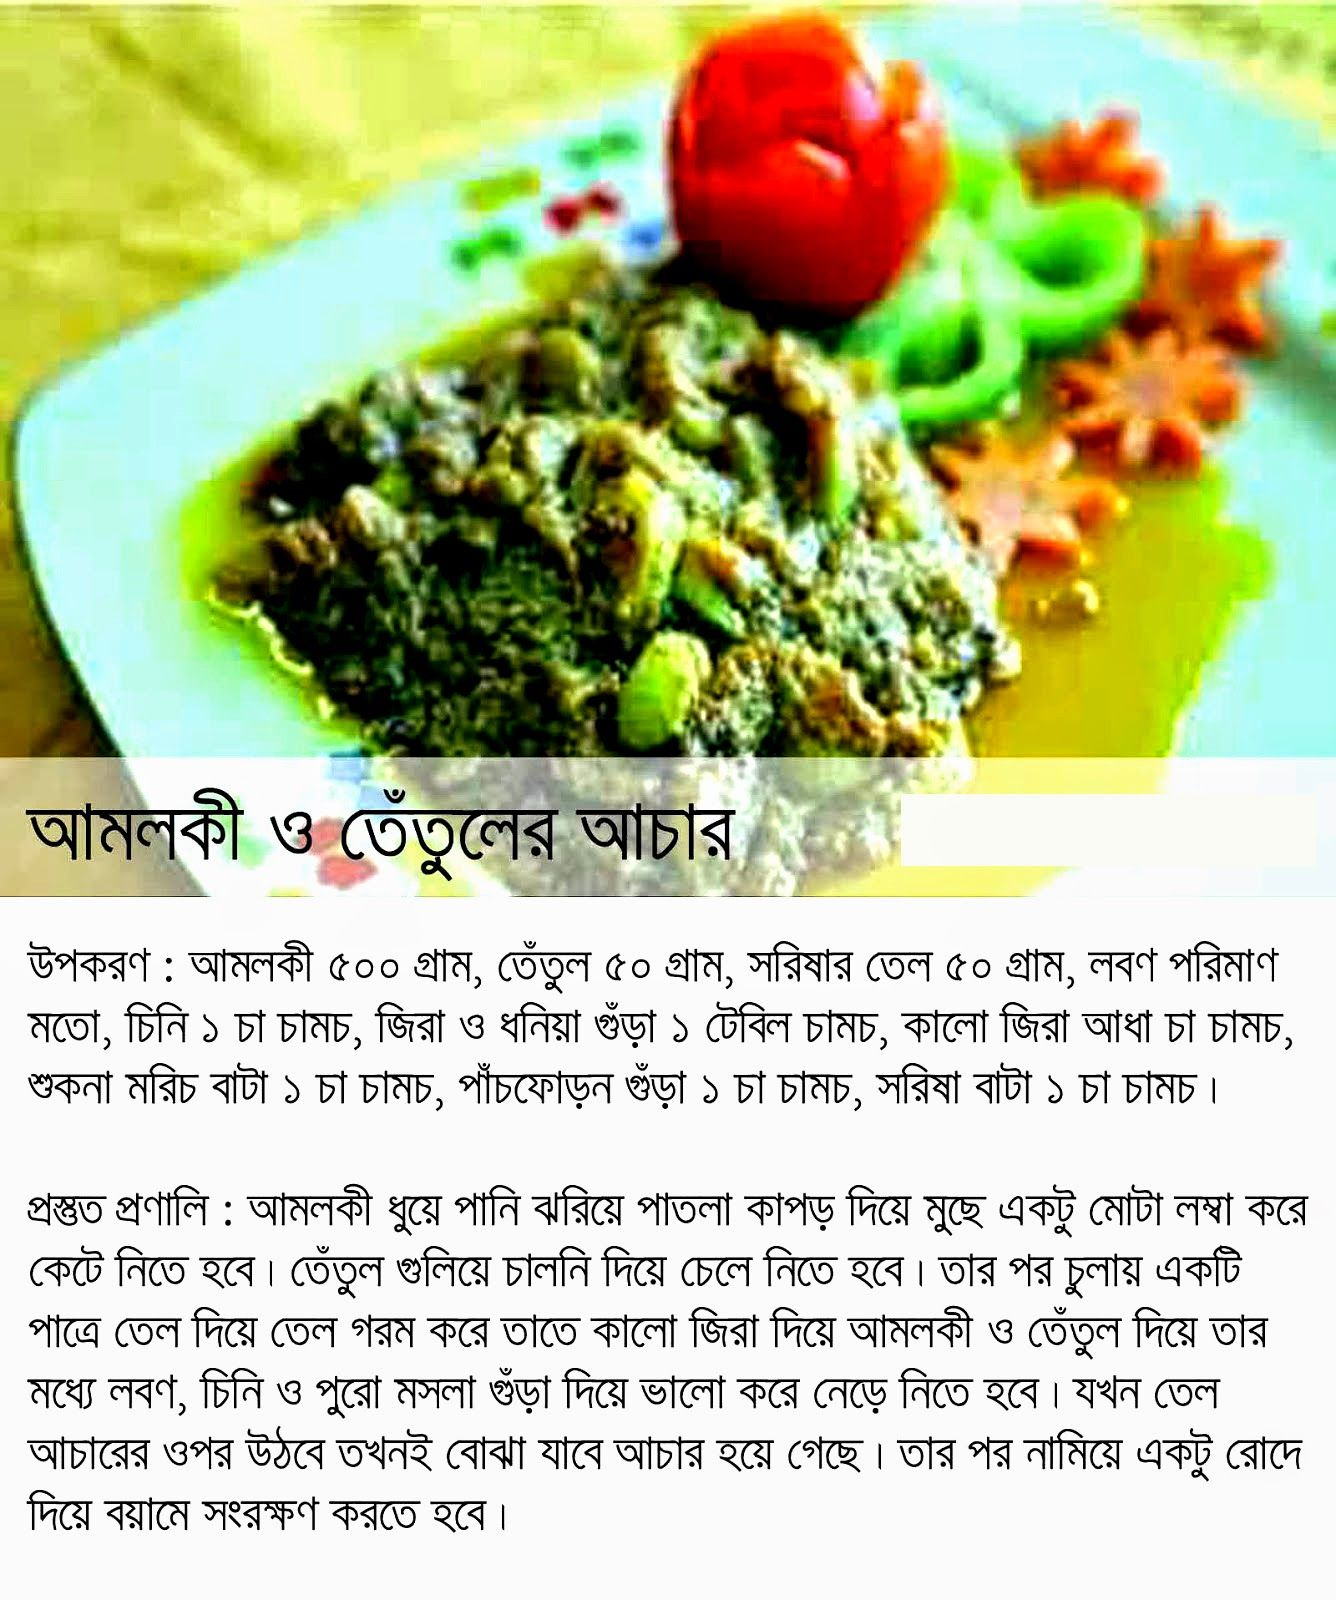 Bangladeshi food recipe amlokki o tetuler acher bangla recipe bangladeshi food recipe amlokki o tetuler acher bangla recipe forumfinder Choice Image